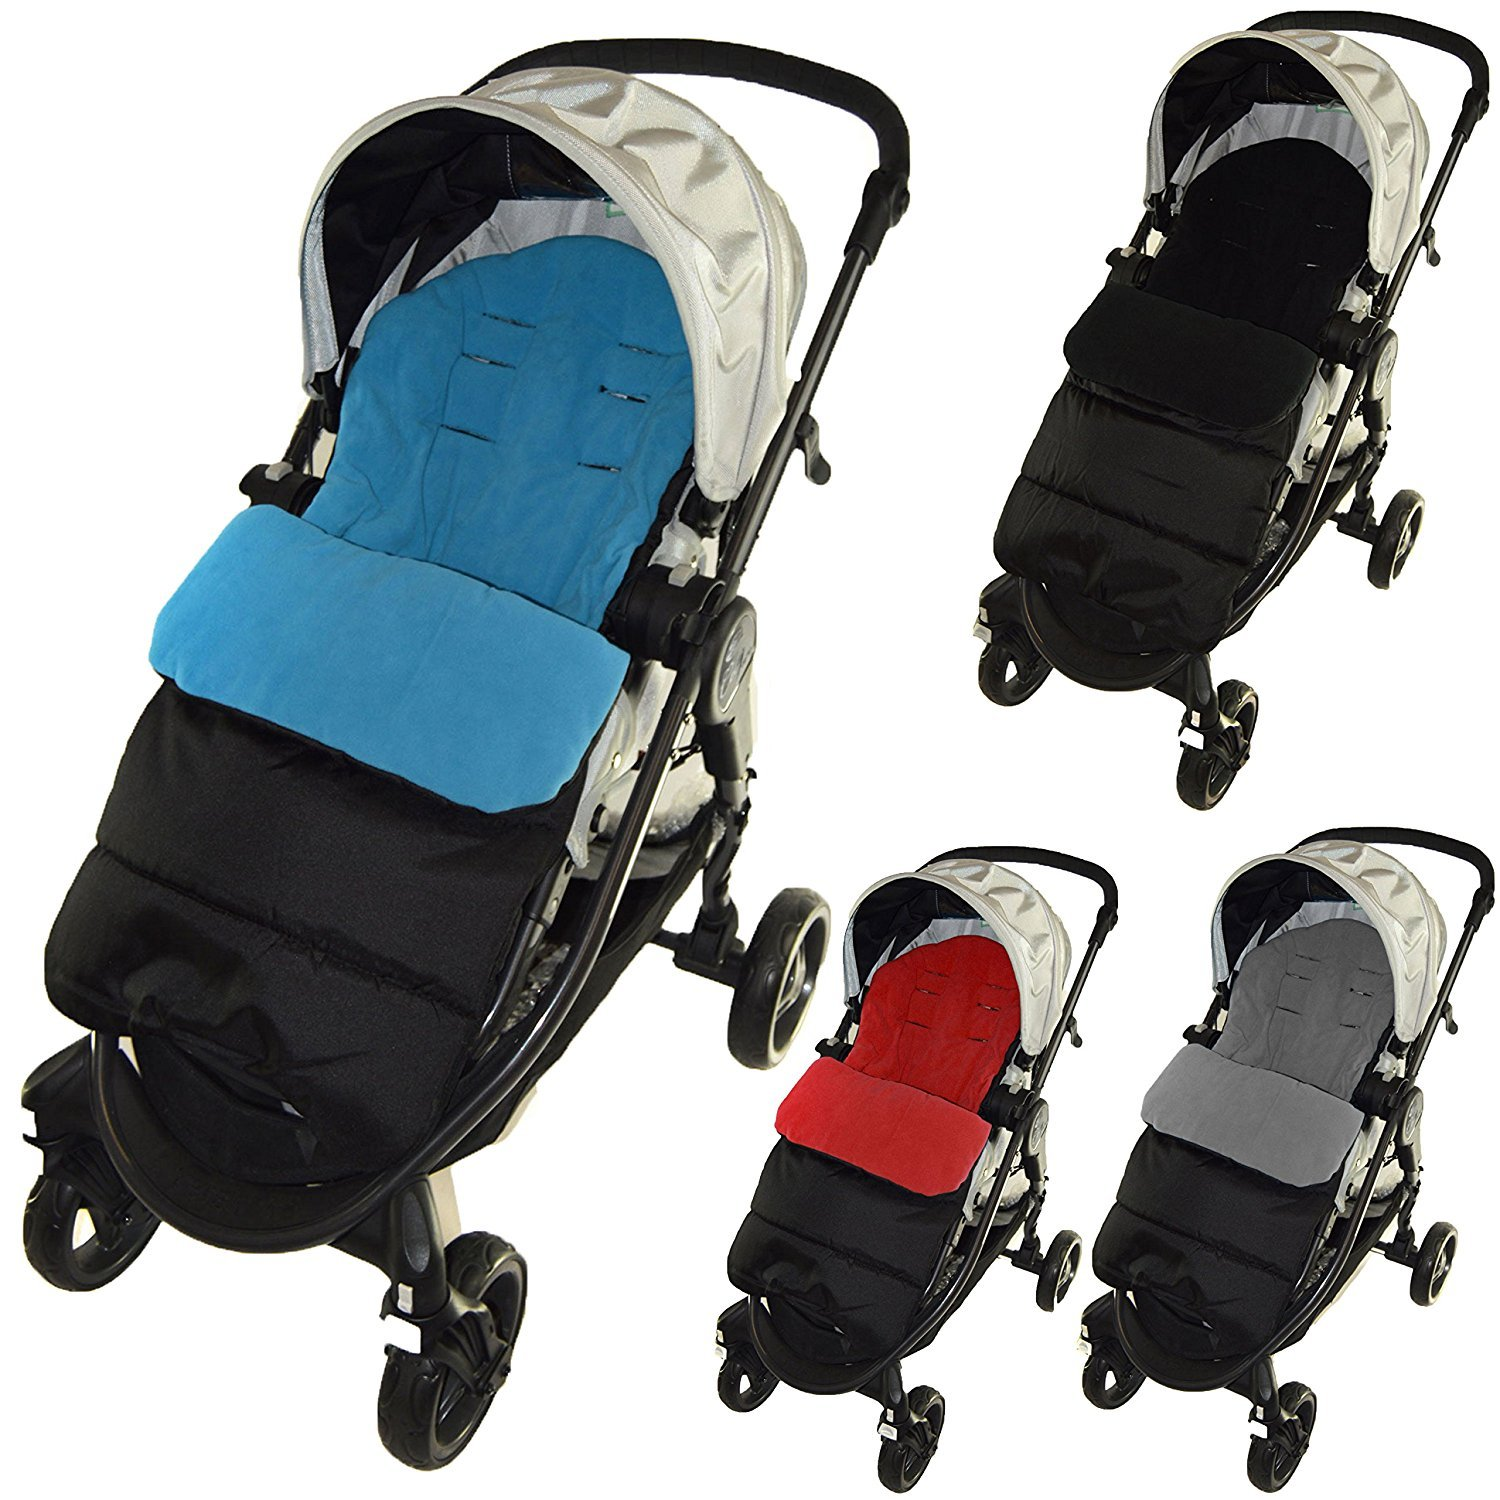 Saco cubrepiés de Cosy Toes compatible con carrito Hauck océano azul For-Your-Little-One Others